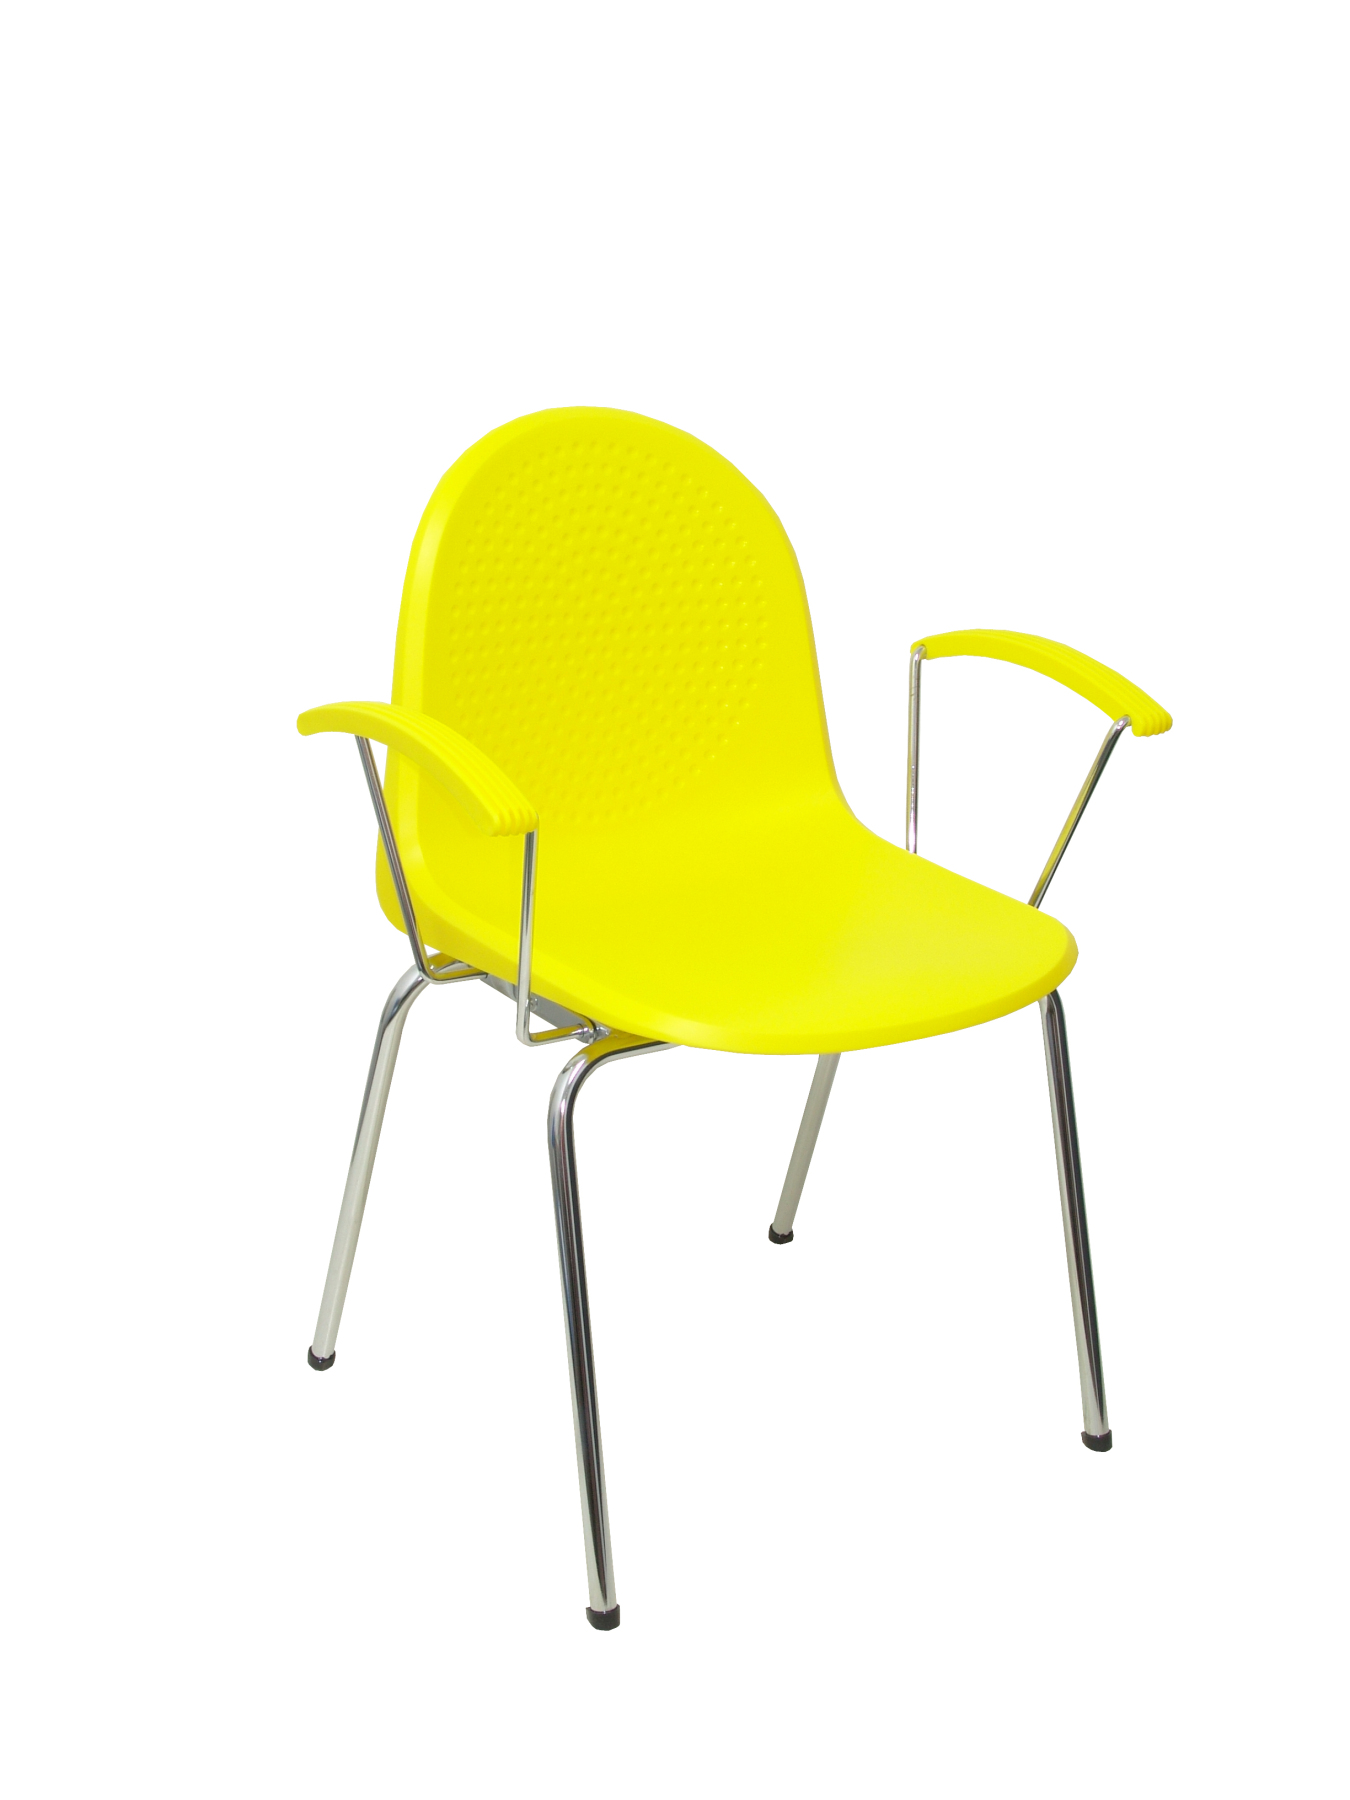 Visitor Chair Desk Ergonomic With Arms Fixed Chrome And Plastic Chrome Bold Up Seat And Backstop Structure Color AM